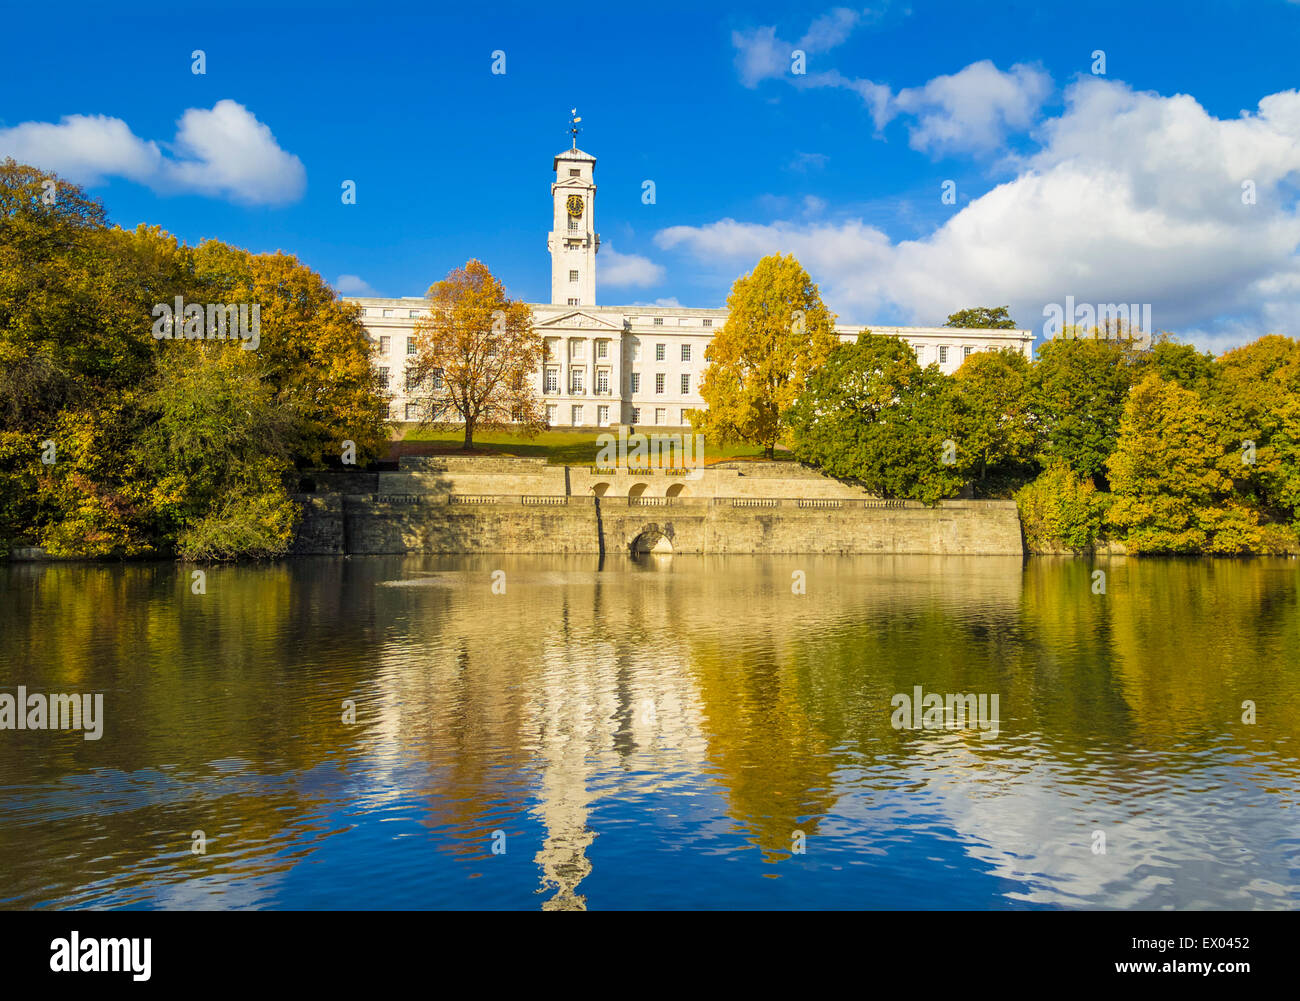 Trent Building and Highfields lake Nottingham University Park Nottingham Nottinghamshire England UK GB EU Europe - Stock Image